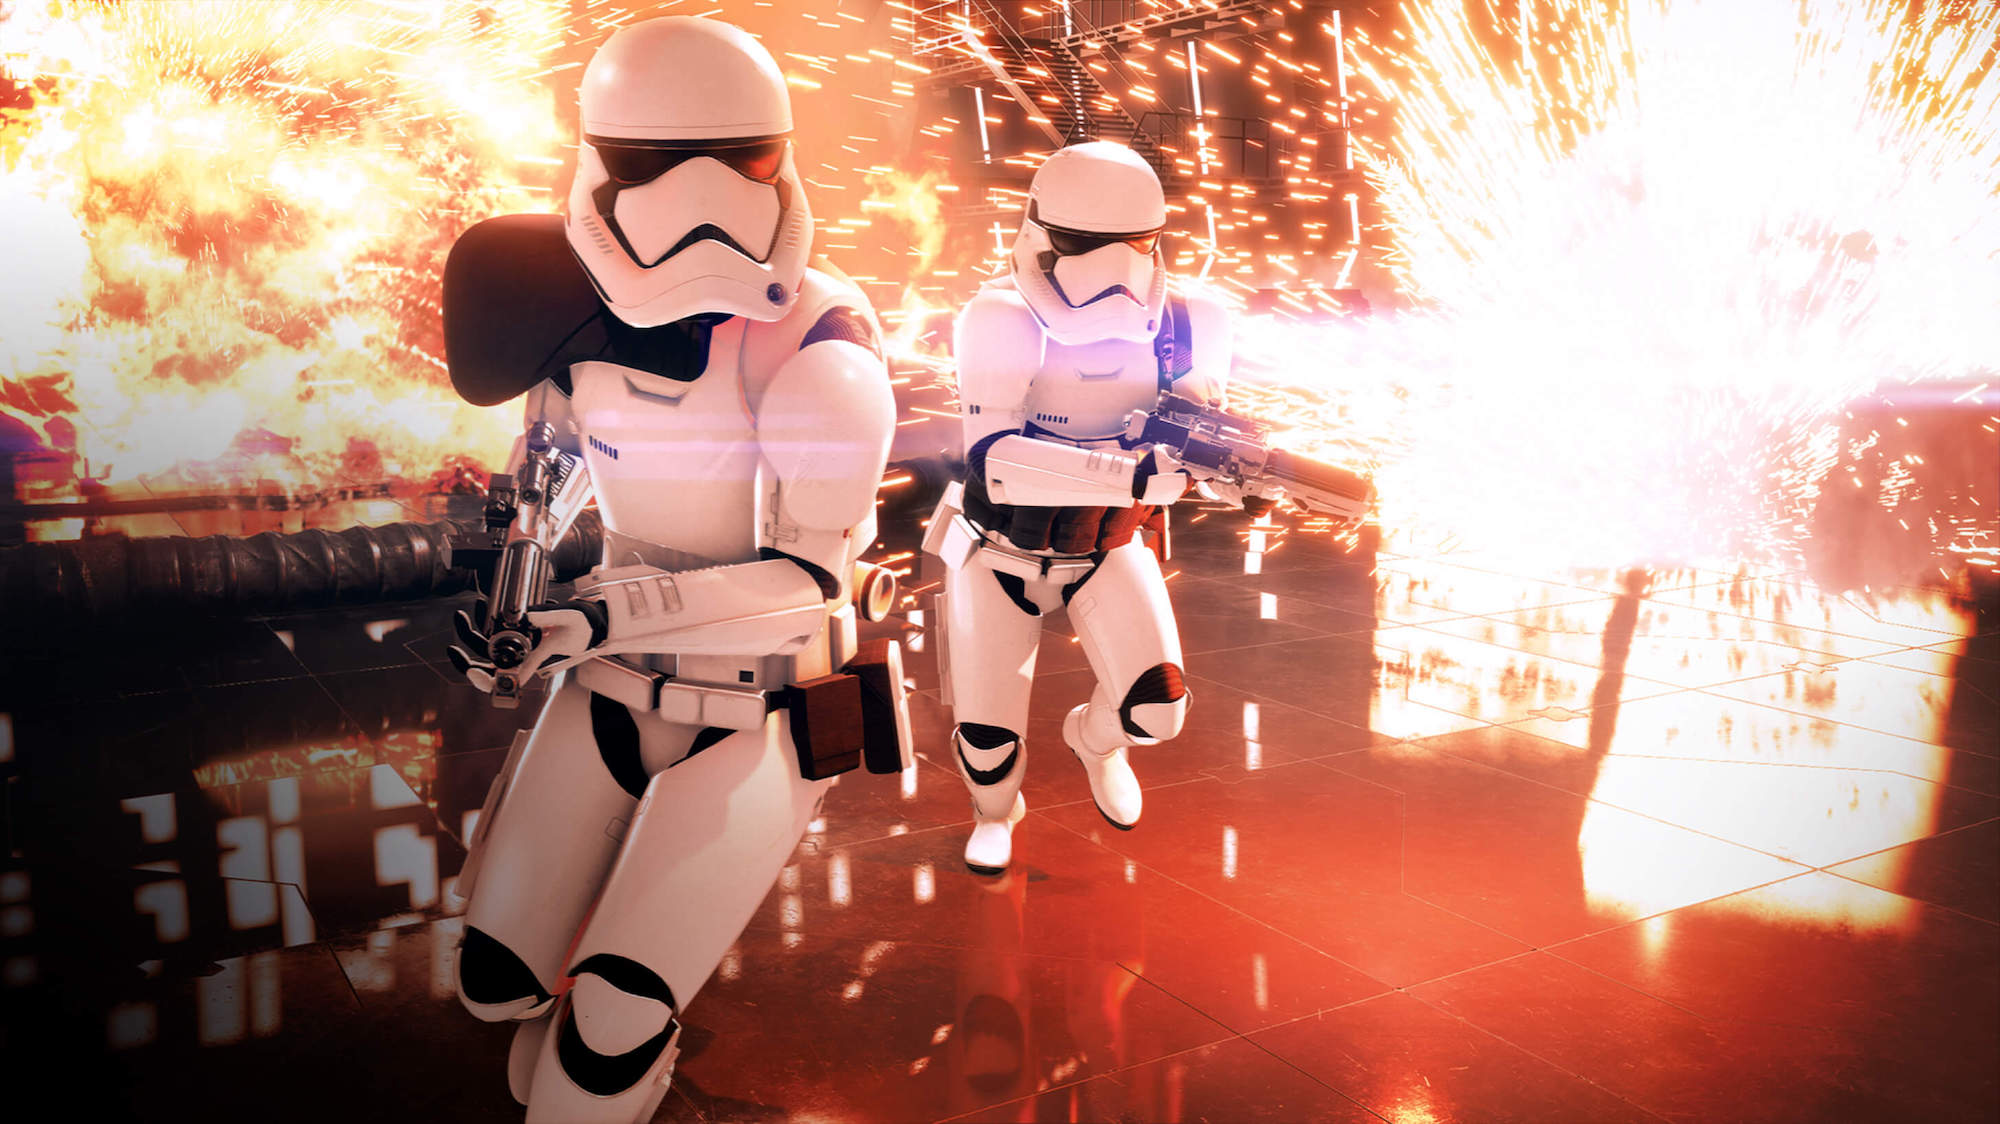 Star Wars battlefront 2 multiplayer